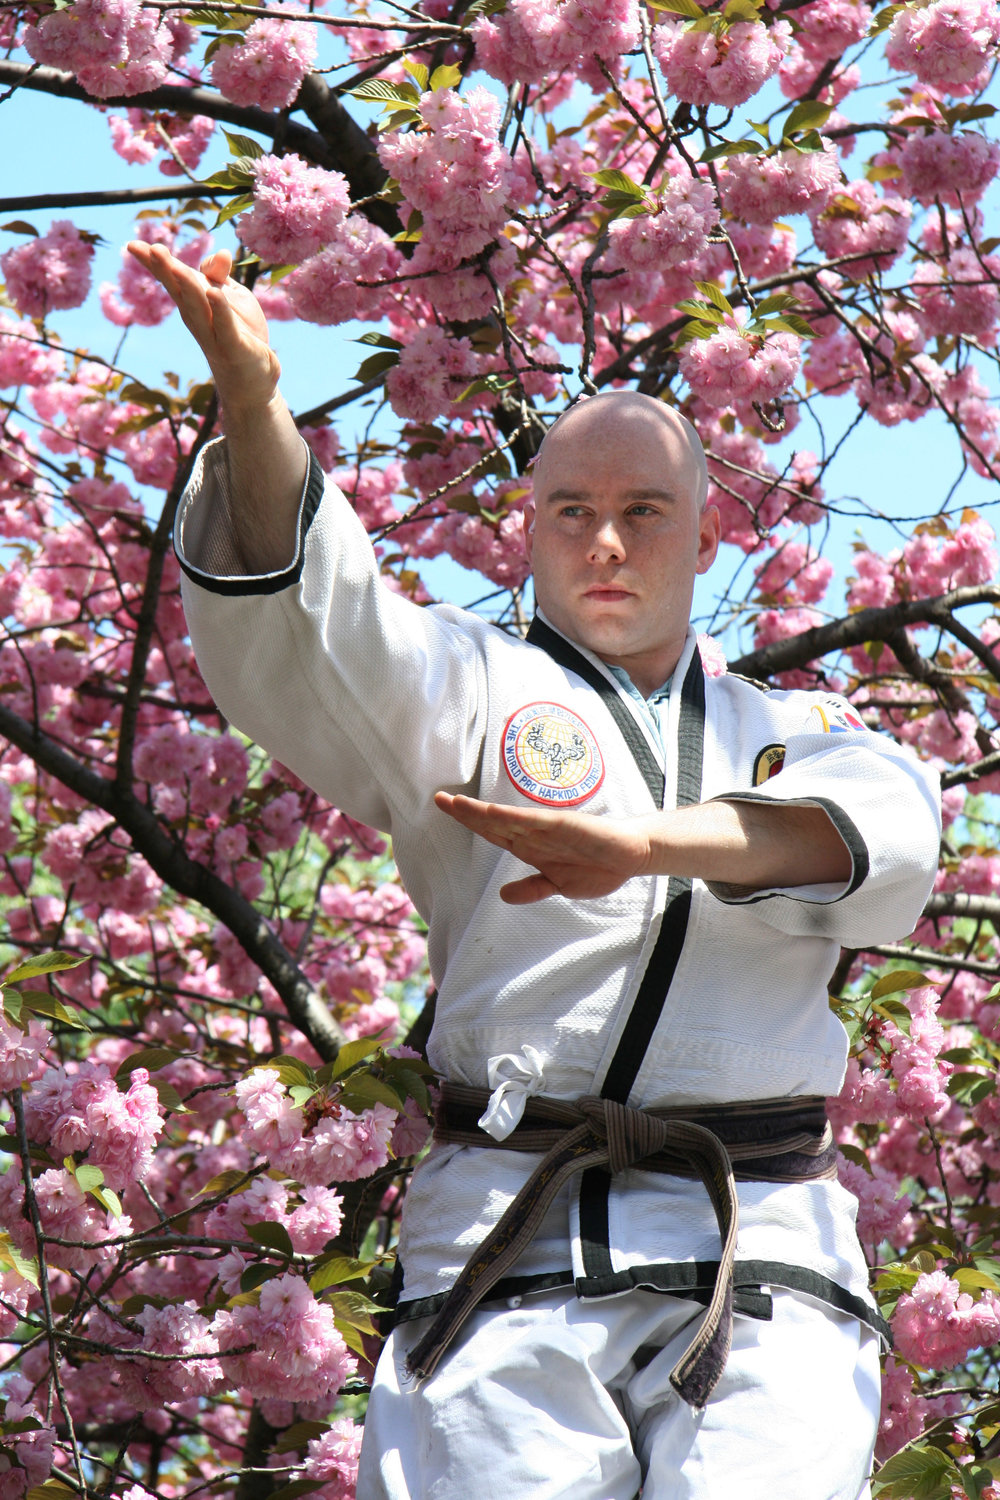 ChungSaNim Master Jonathan Waks - received his 1st Dan Black Belt in HapKiDo in 2001, a 2nd Dan in 2004, 3rd Dan in 2010 and 4th in 2015. In addition, he also holds a First Dan – 2008 in VSK Jujitsu- Soke John Davis. Jonathan has over 1500 teaching hours, and has led specialty seminars in weapons, sparring, falling, philosophy, meditation and teacher training. He works as an event and marketing producer in Manhattan.